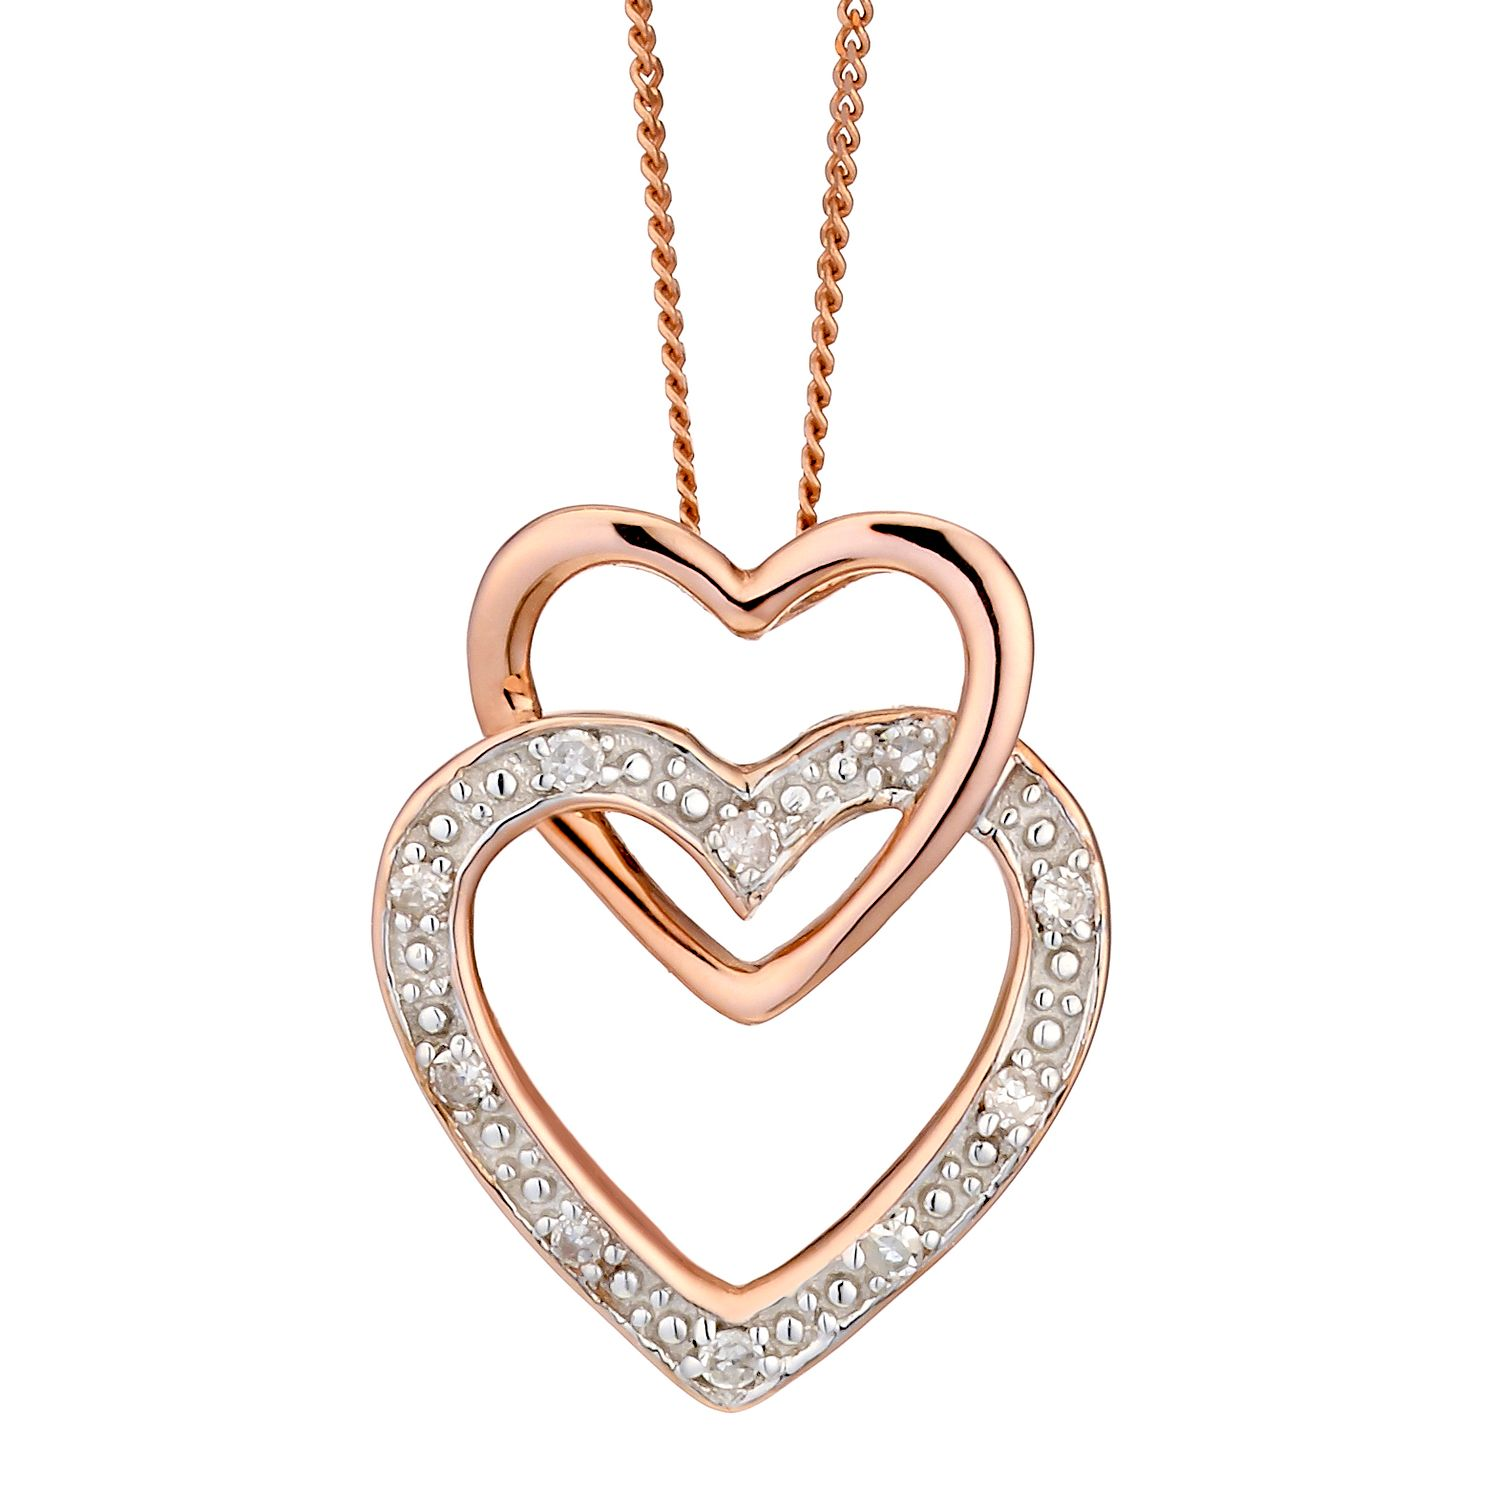 id constrain pendants double with jewelry necklaces fit in return heart to tag fmt pendant hei pink silver br ed mini wid tiffany